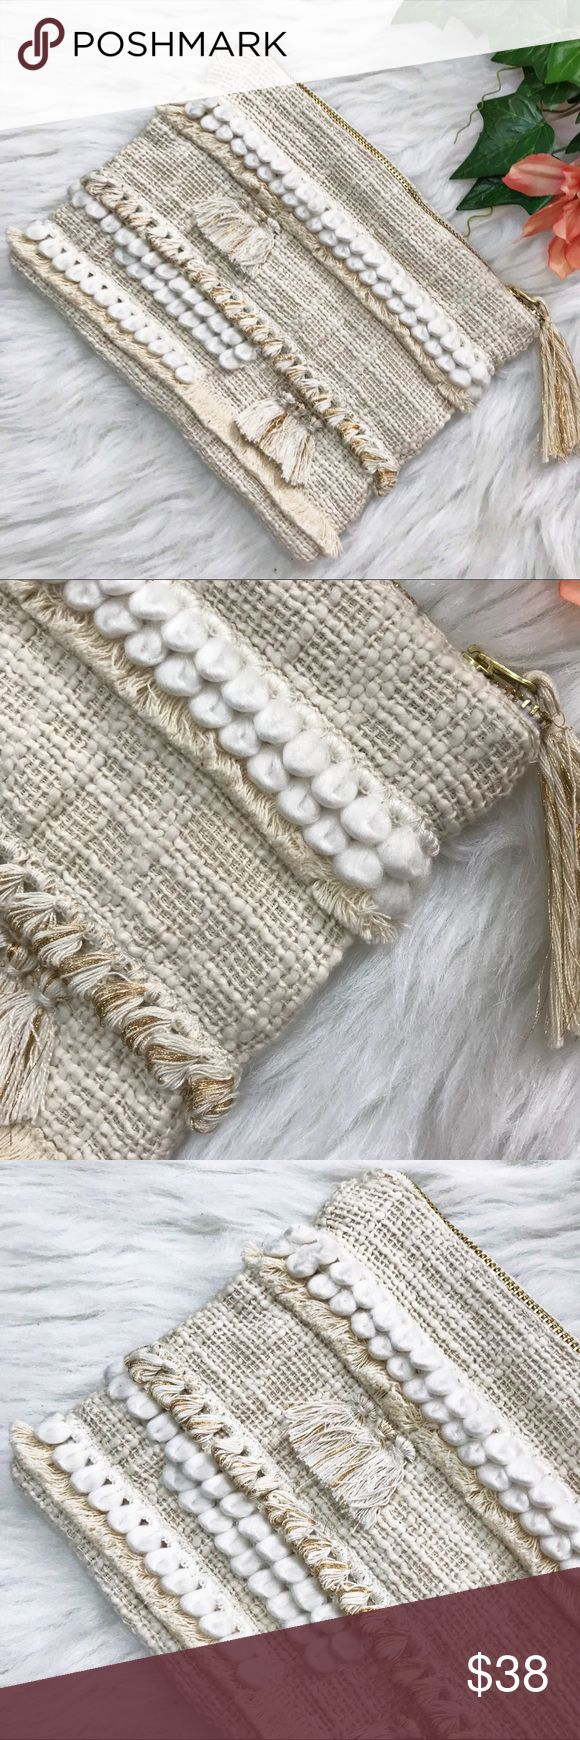 Anthropologie Woven Fringed Cotton Ball Clutch Bag Anthropologie  Woven Fringed Cotton Ball Clutch Bag . Wonderfully Woven in a Cotton Burlap Texture with White Loopy Ball Trim . Natural colored softly fringed . Gold Metallic Woven Tassels . Zip Top . The Perfect Little Clutch or use it as a beautifully luxuriant Cosmetics Bag . Size 7 Tall 9 Wide . Preloved in excellent condition . Anthroplogie Woven Cream Clutch Bag Cosmetic Bag Anthropologie Bags Clutches & Wristlets